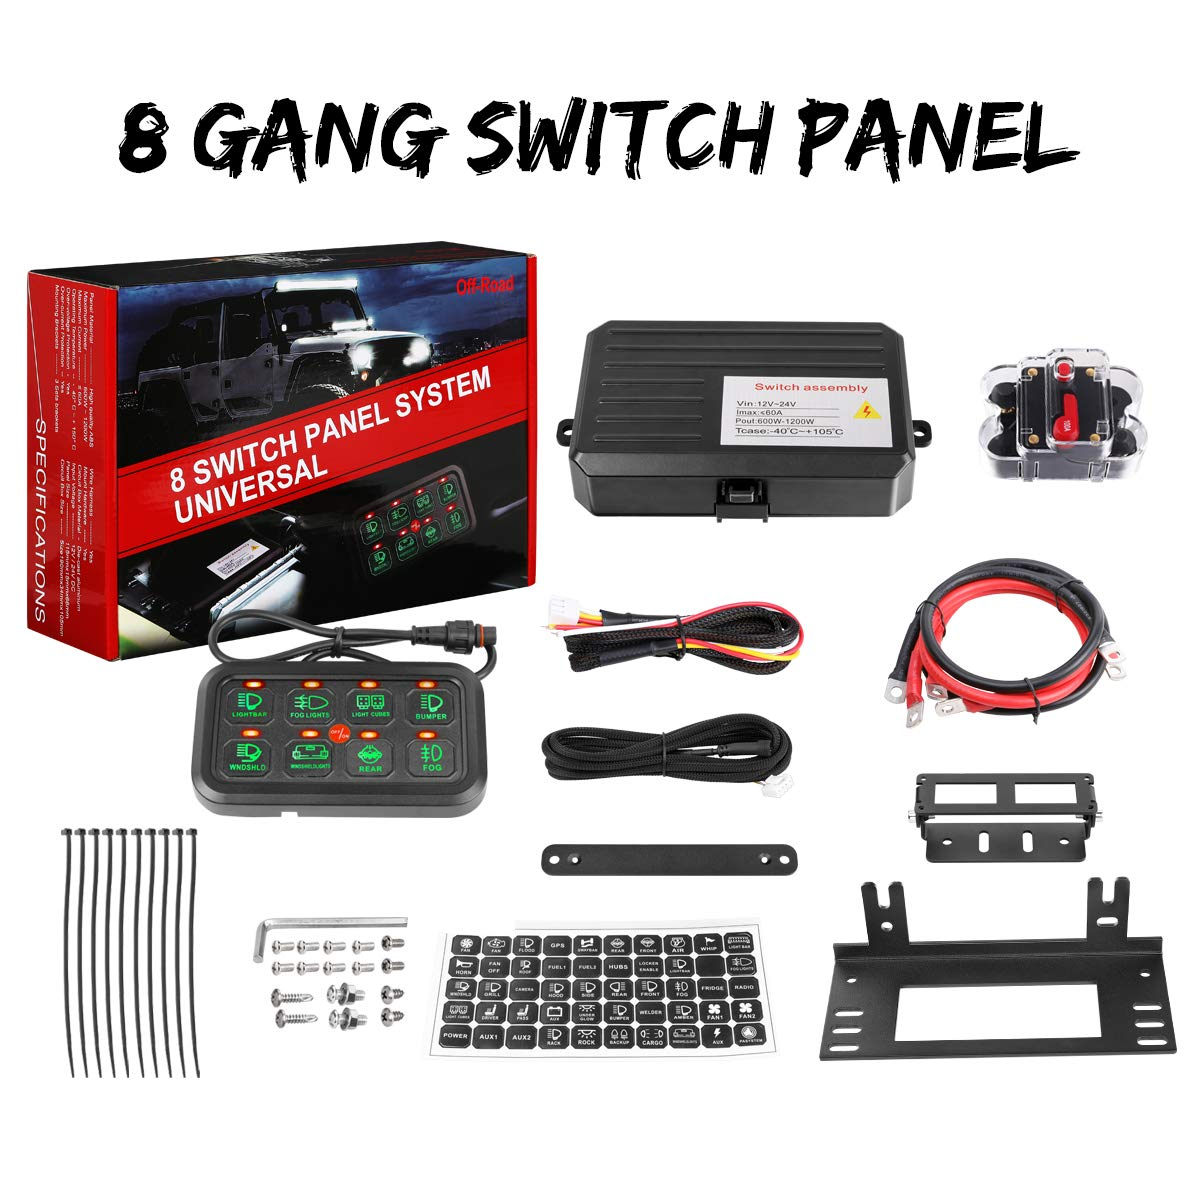 8 Gang Switch Panel, Swatow Industries Electronic Relay System Circuit Control Box Universal Touch Switch Box Power System for Truck Car Jeep ATV UTV Boat Marine Waterproof by SWATOW INDUSTRIES